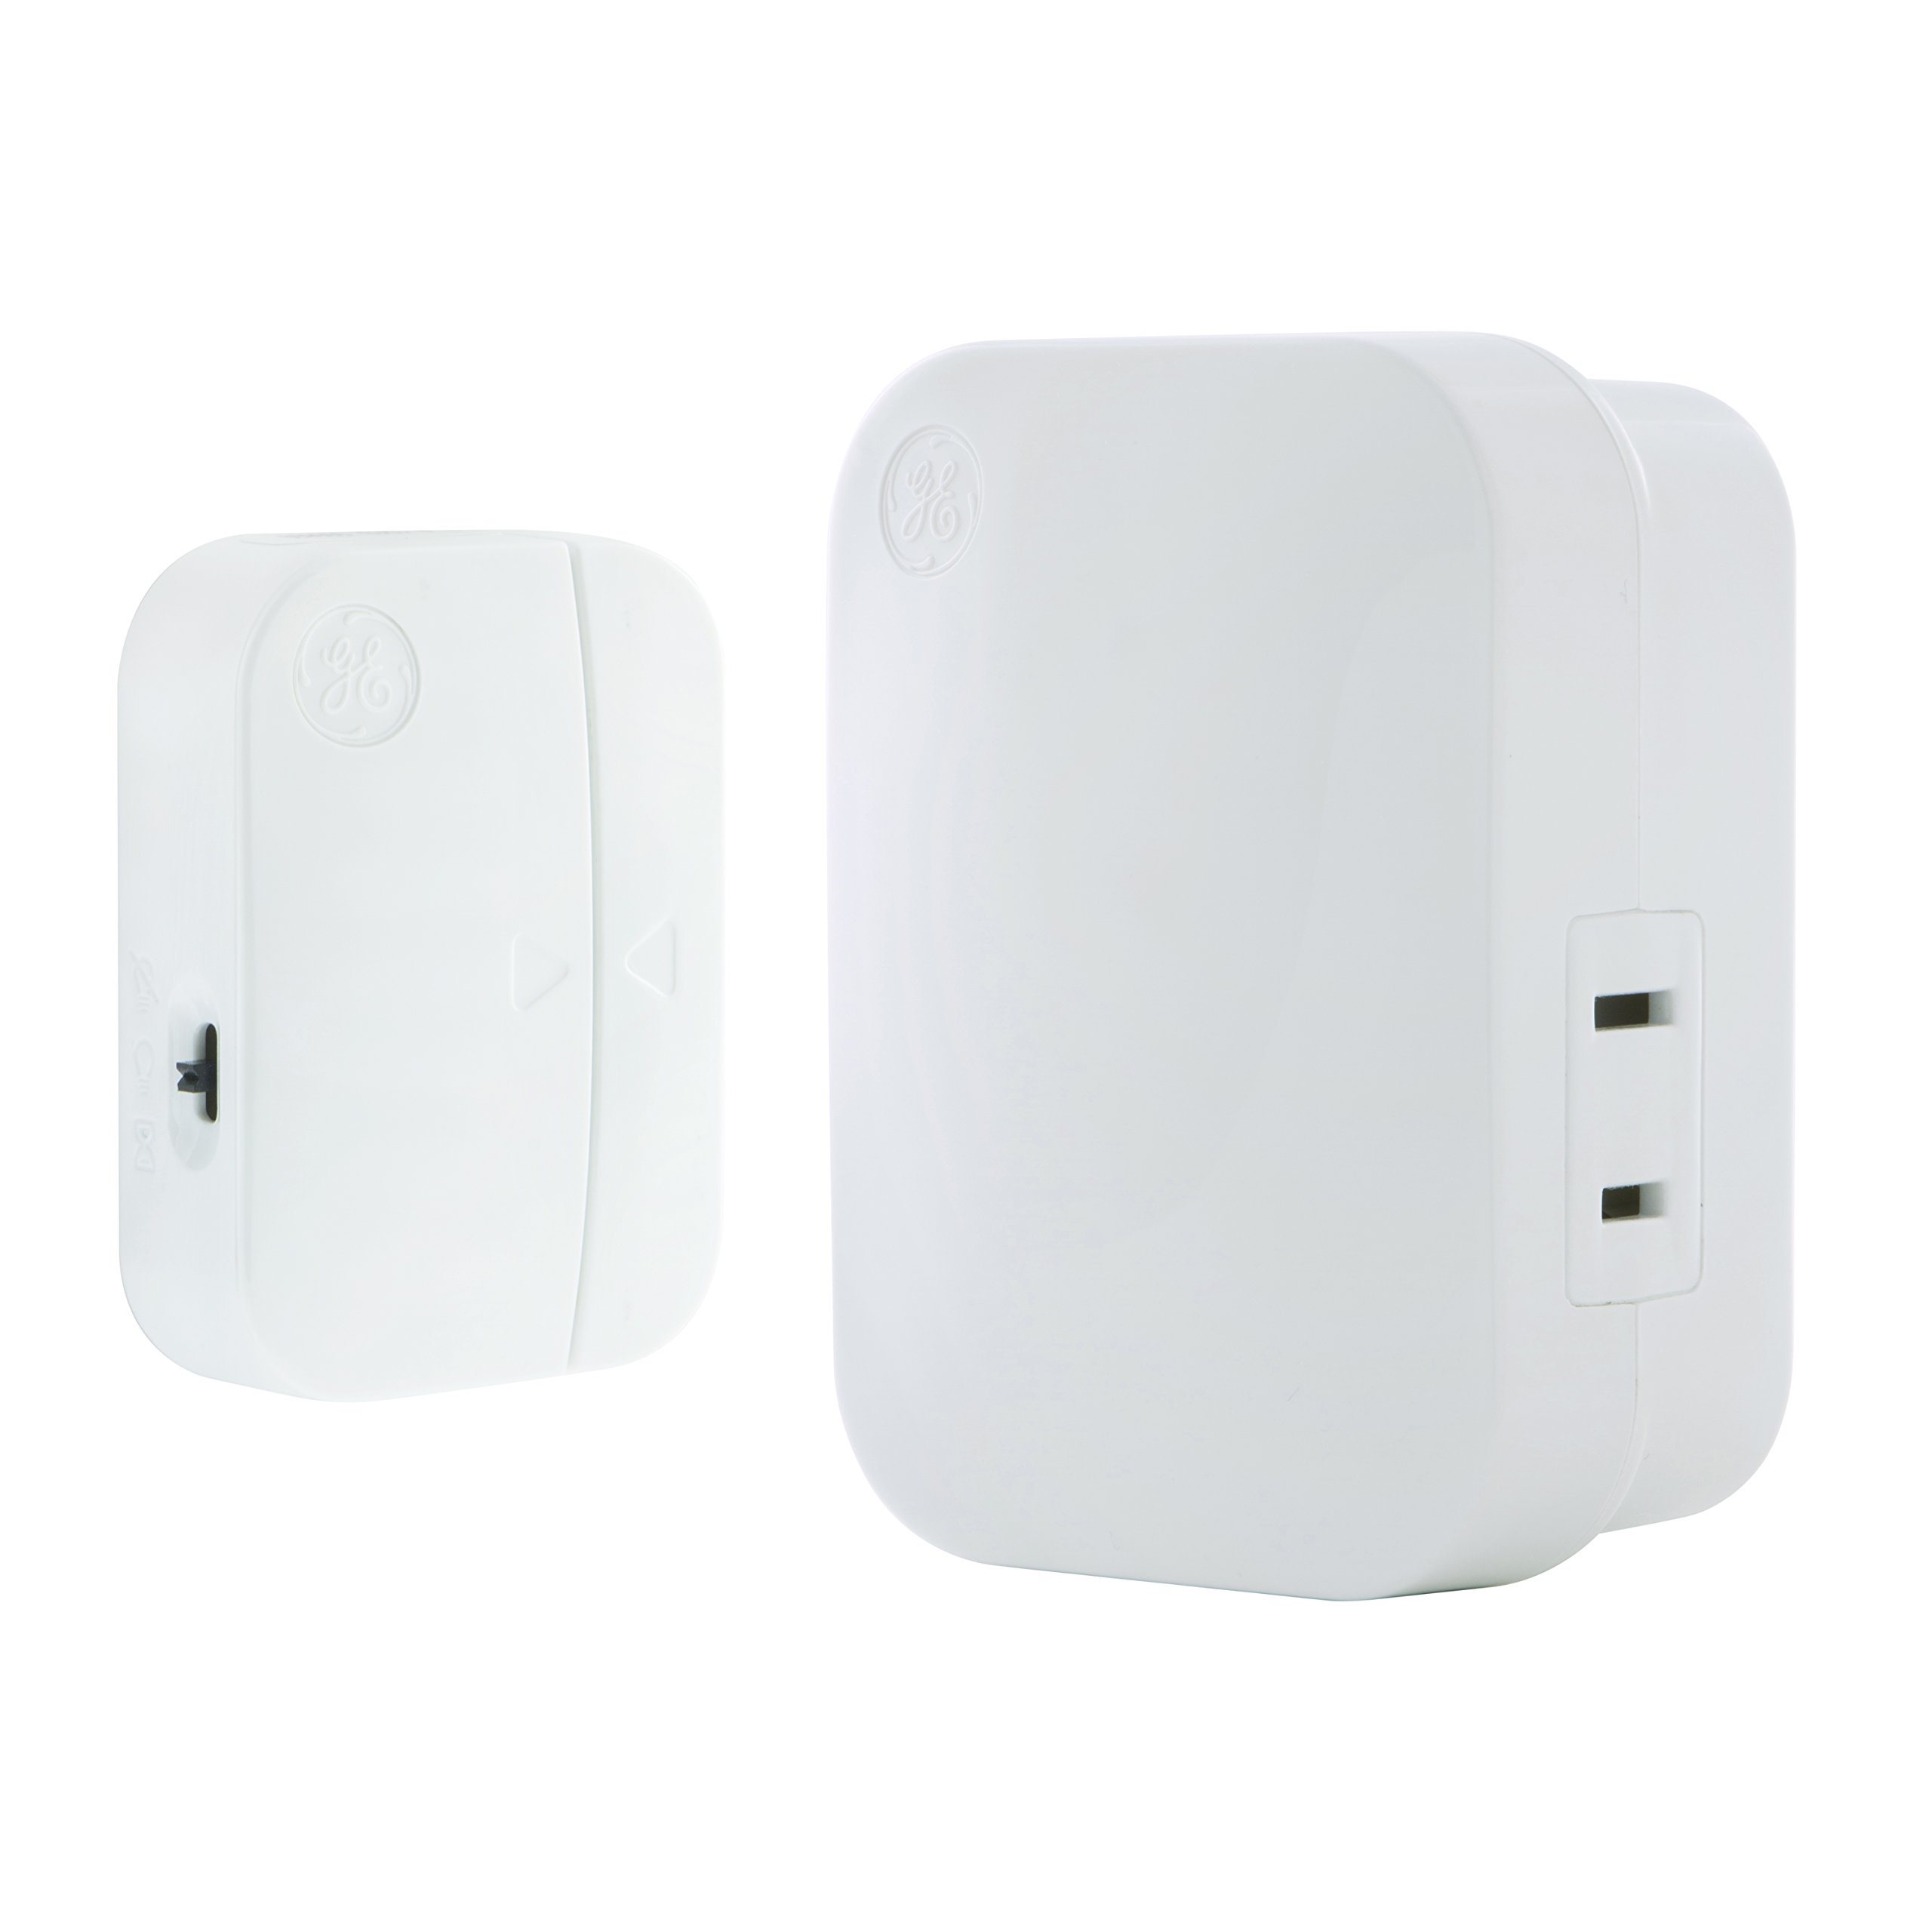 GE mySelectSmart Wireless Light Control Door Entry Contact Sensor, On/Off or Timed, 1 Outlet, 150 ft. Range from Plug-In Receiver, Ideal for Lamps & Indoor Lighting, No Wiring Needed, 36236